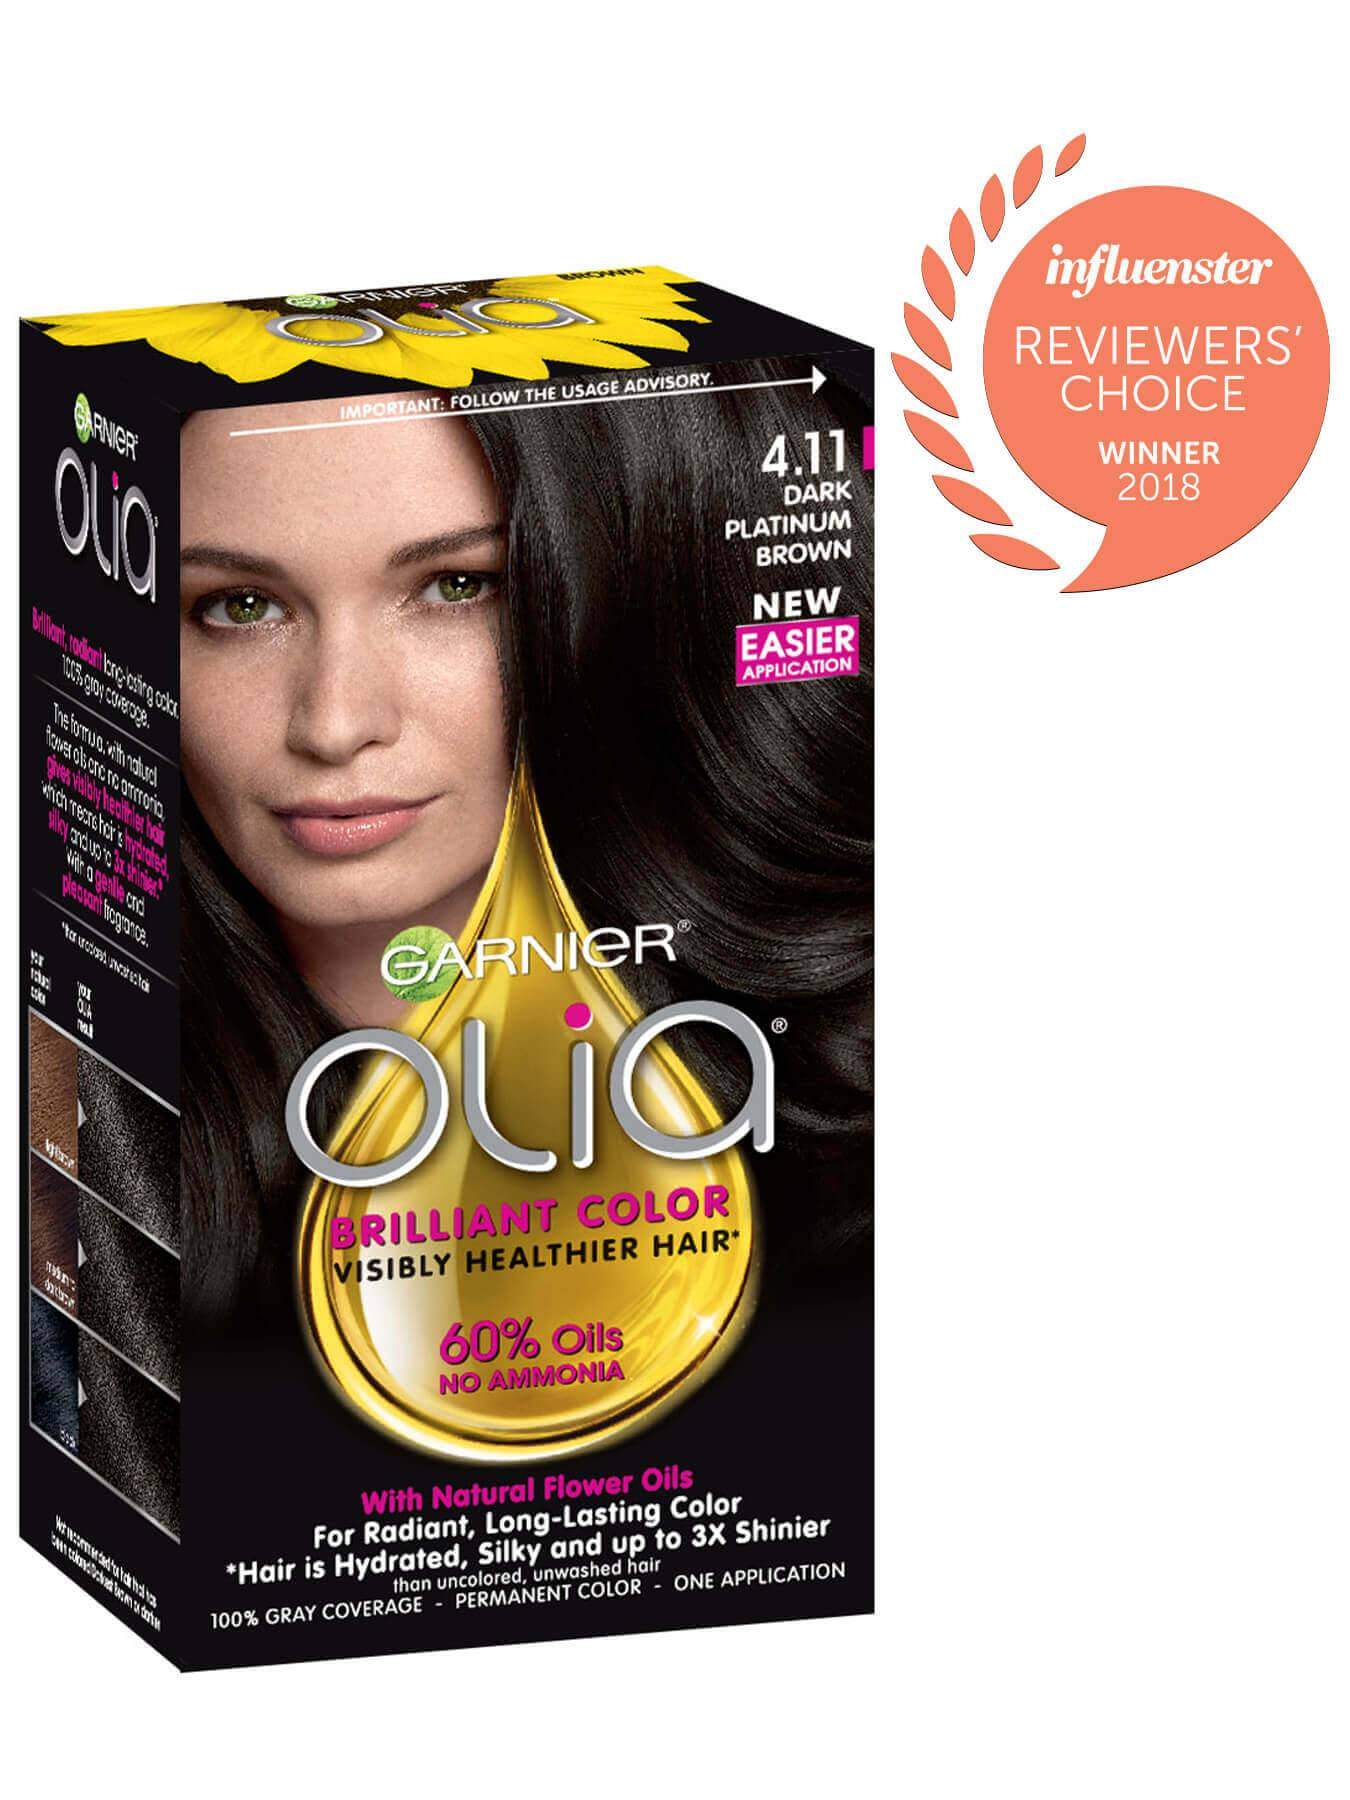 Garnier Olia Packshot Award 4.11 Dark Platinum Brown